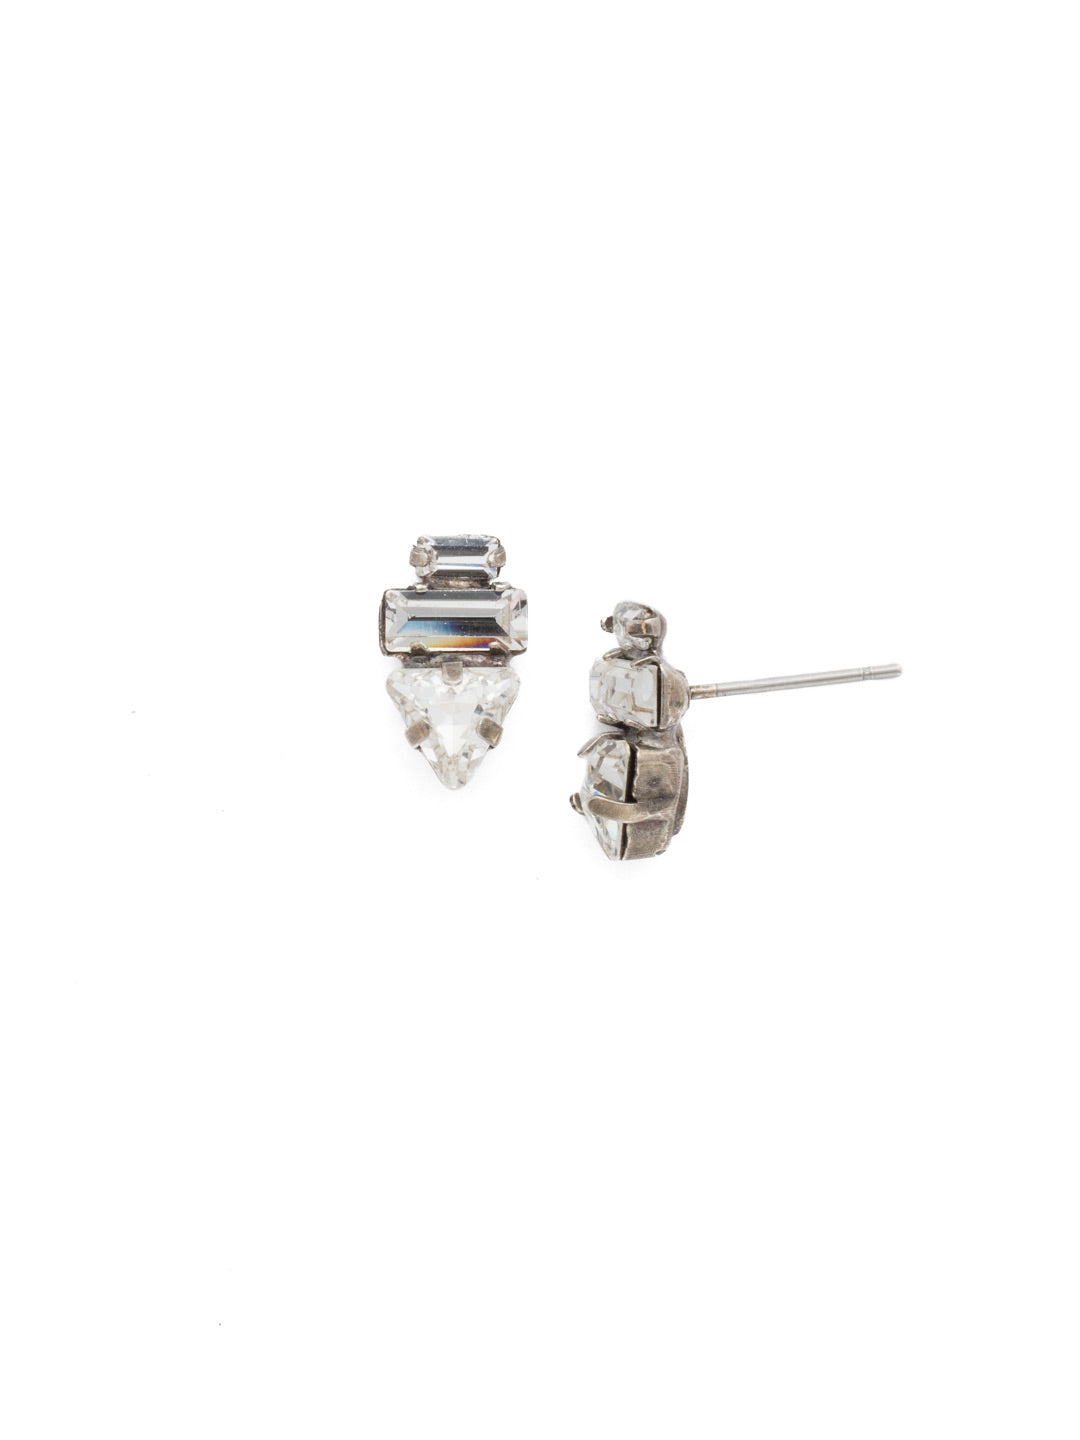 Triple Stack Stud Earrings - EDN104ASCRY